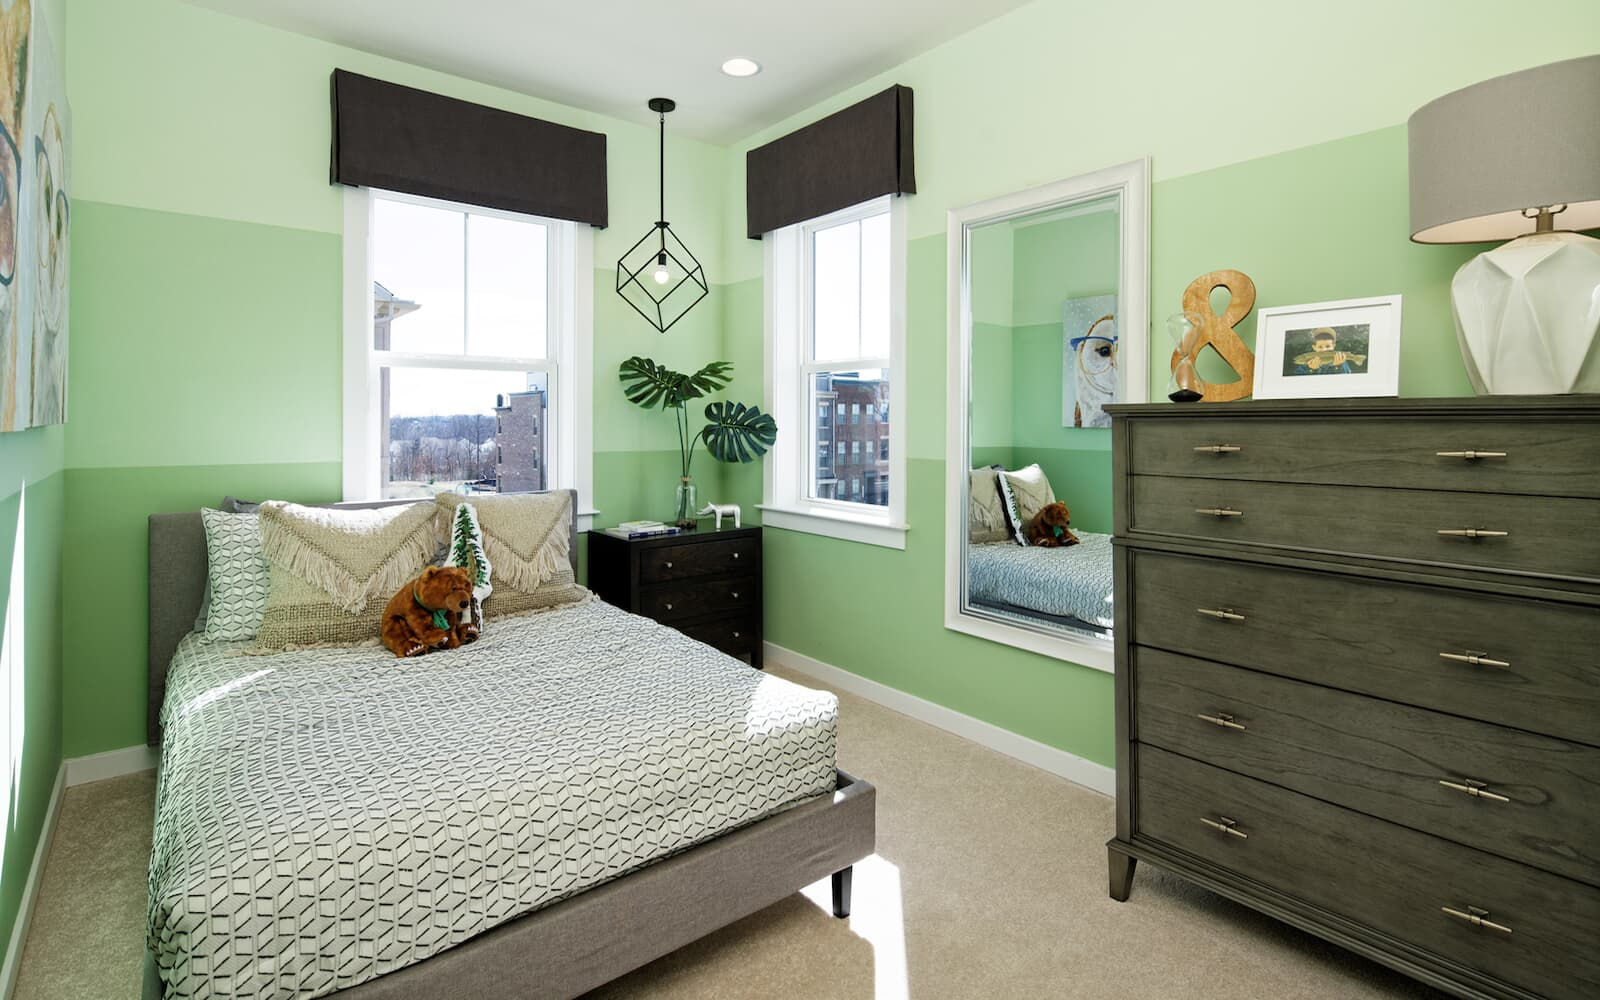 Moorefield-bedroom2-townhomes-north-potomac-md-travilah-station-brookfield-residential